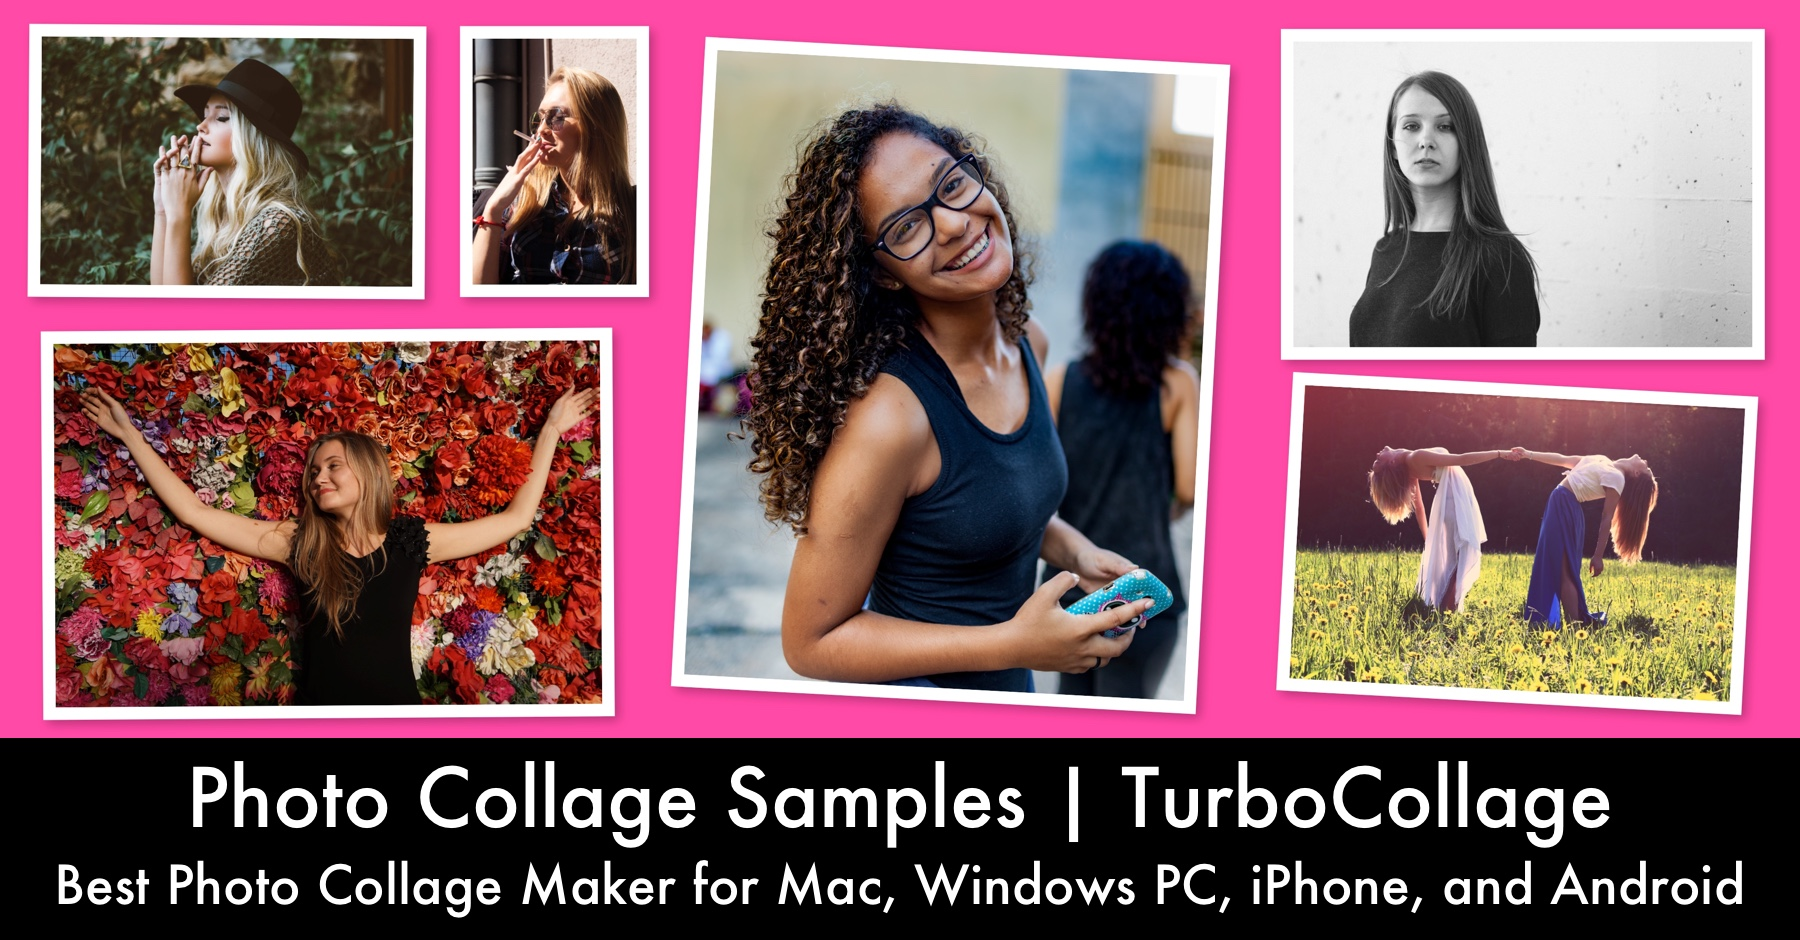 17 amazing collage samples and how to make them